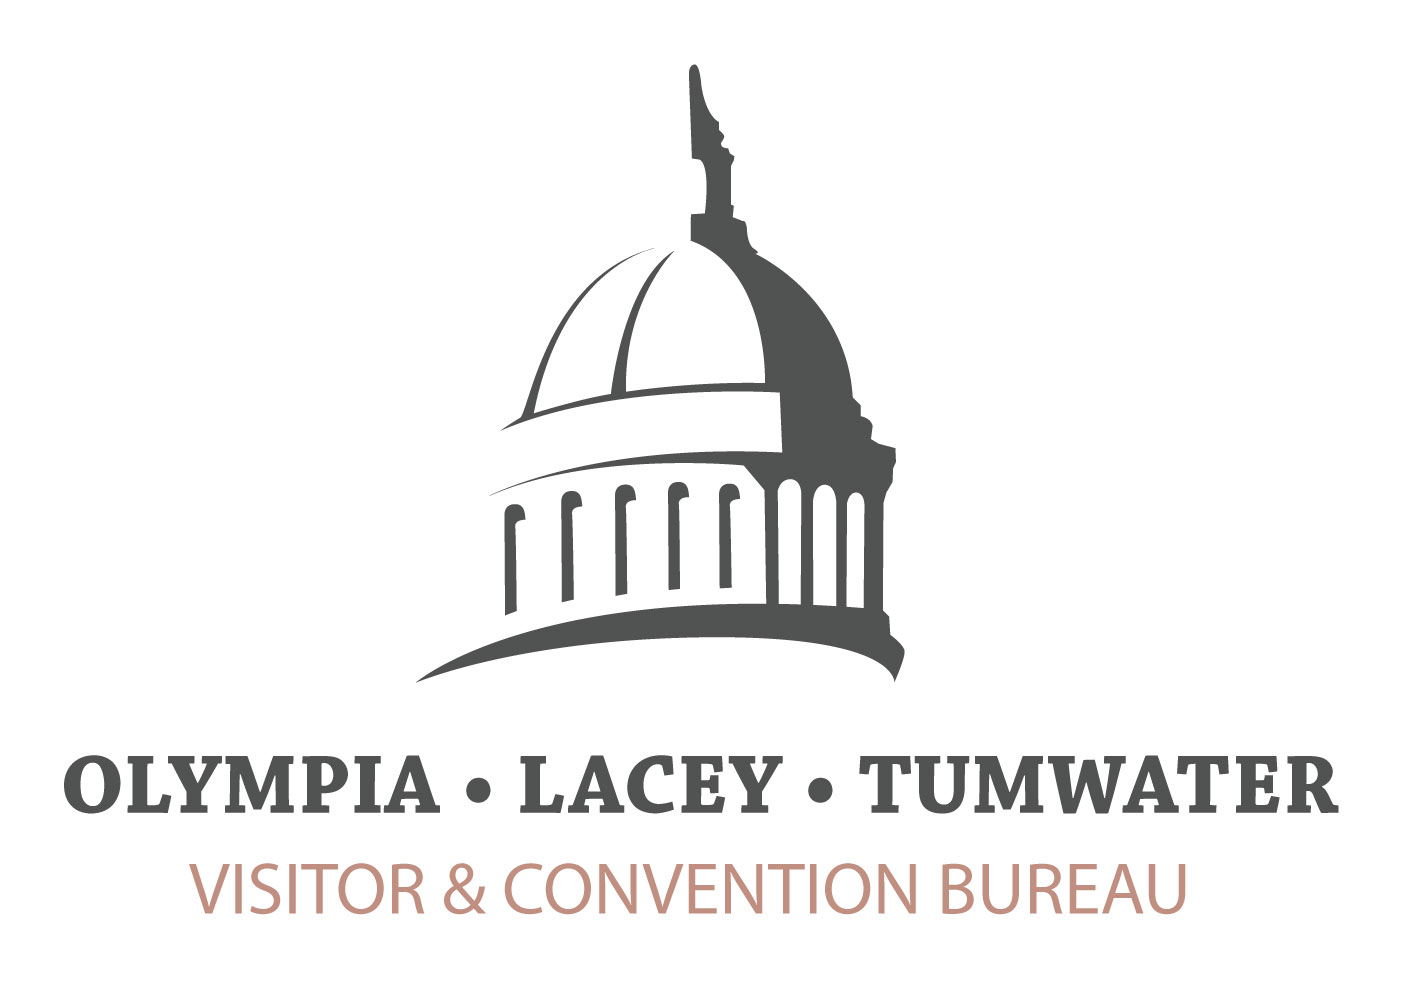 The Visitor and Convention Bureau Supports the Lacey Conference Center.